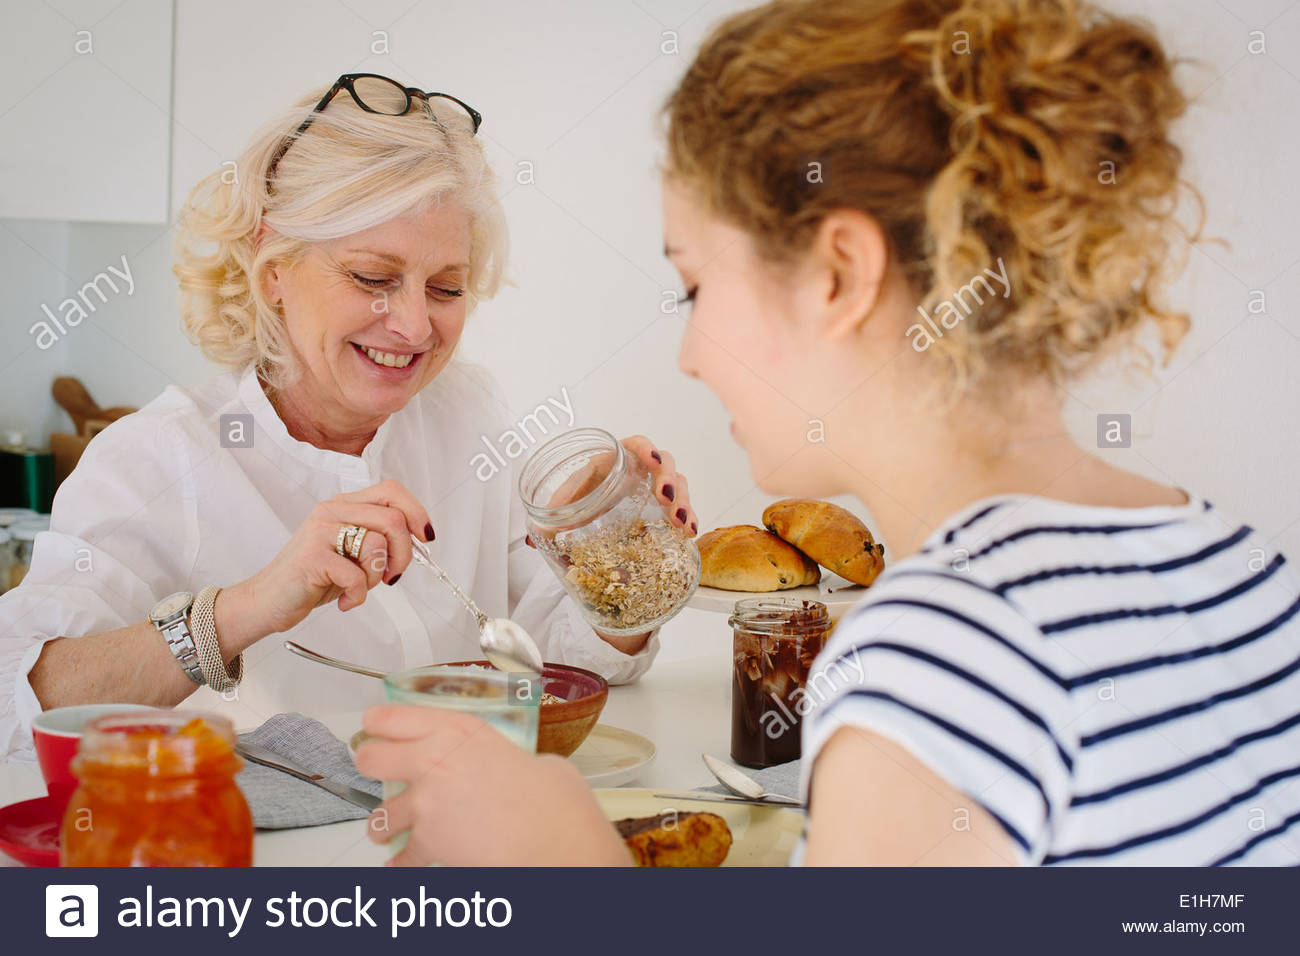 Mother and teenage daughter sharing breakfast at home - Stock Image